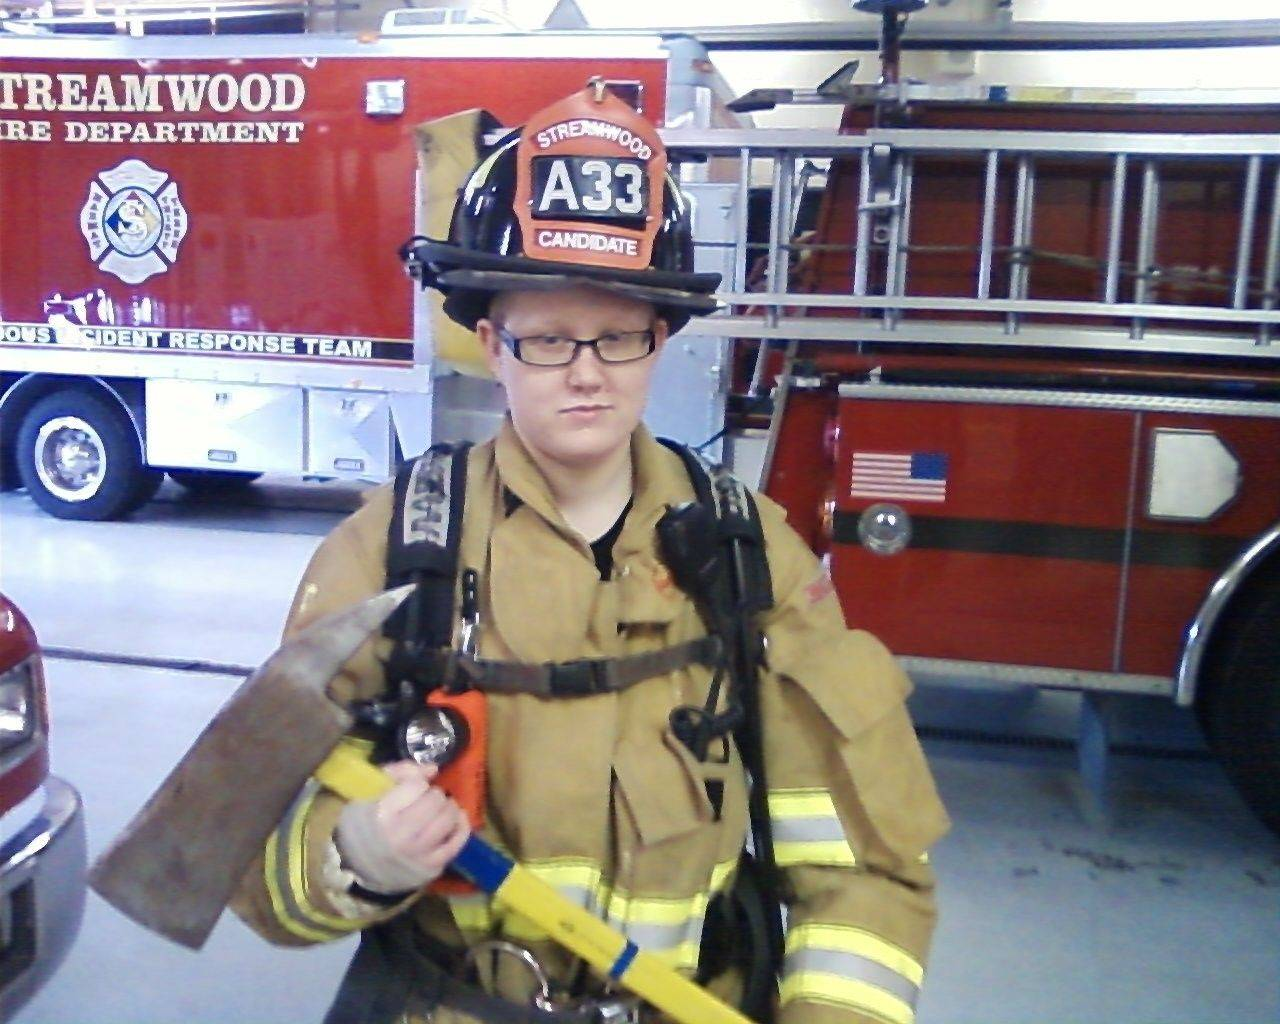 Shelby Williams recently toured a Streamwood fire station, en route to her dream of becoming a firefighter.